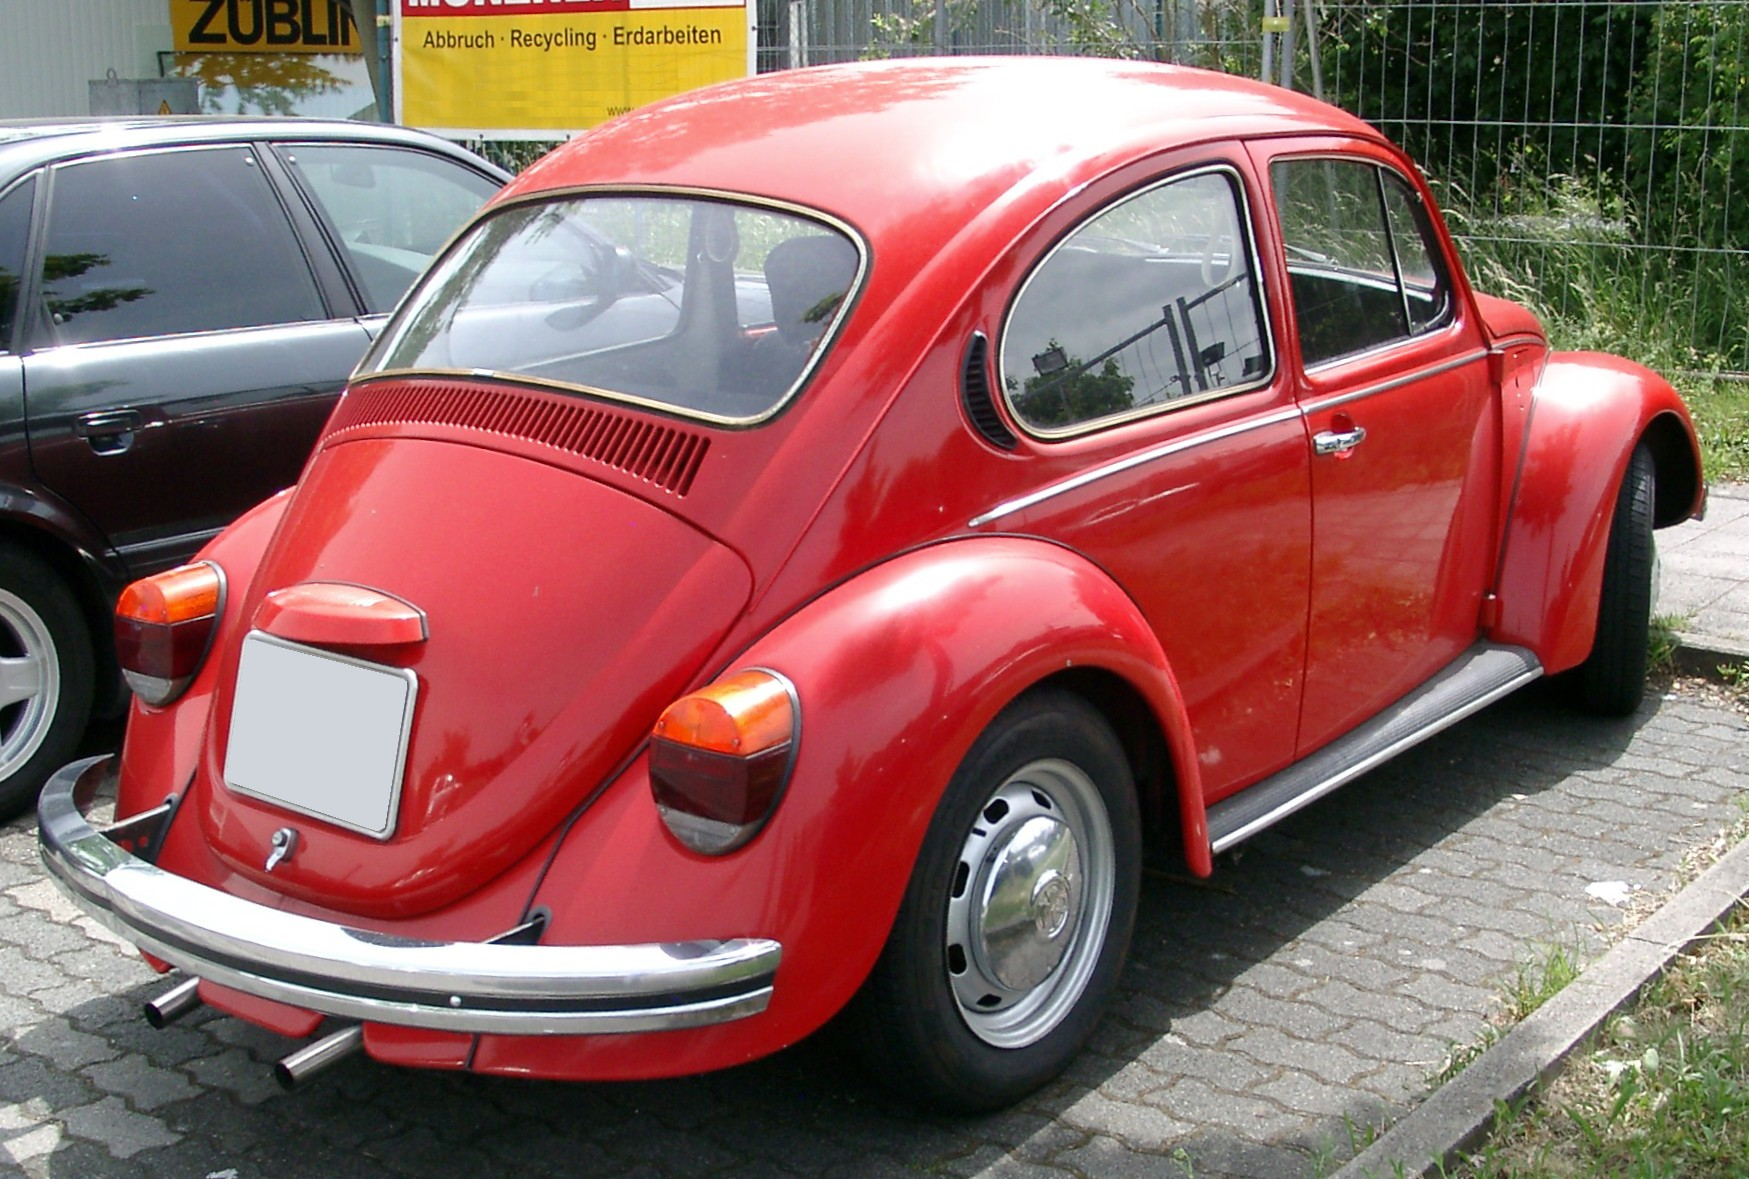 VW_Kaefer_1303_rear_20080624.jpg